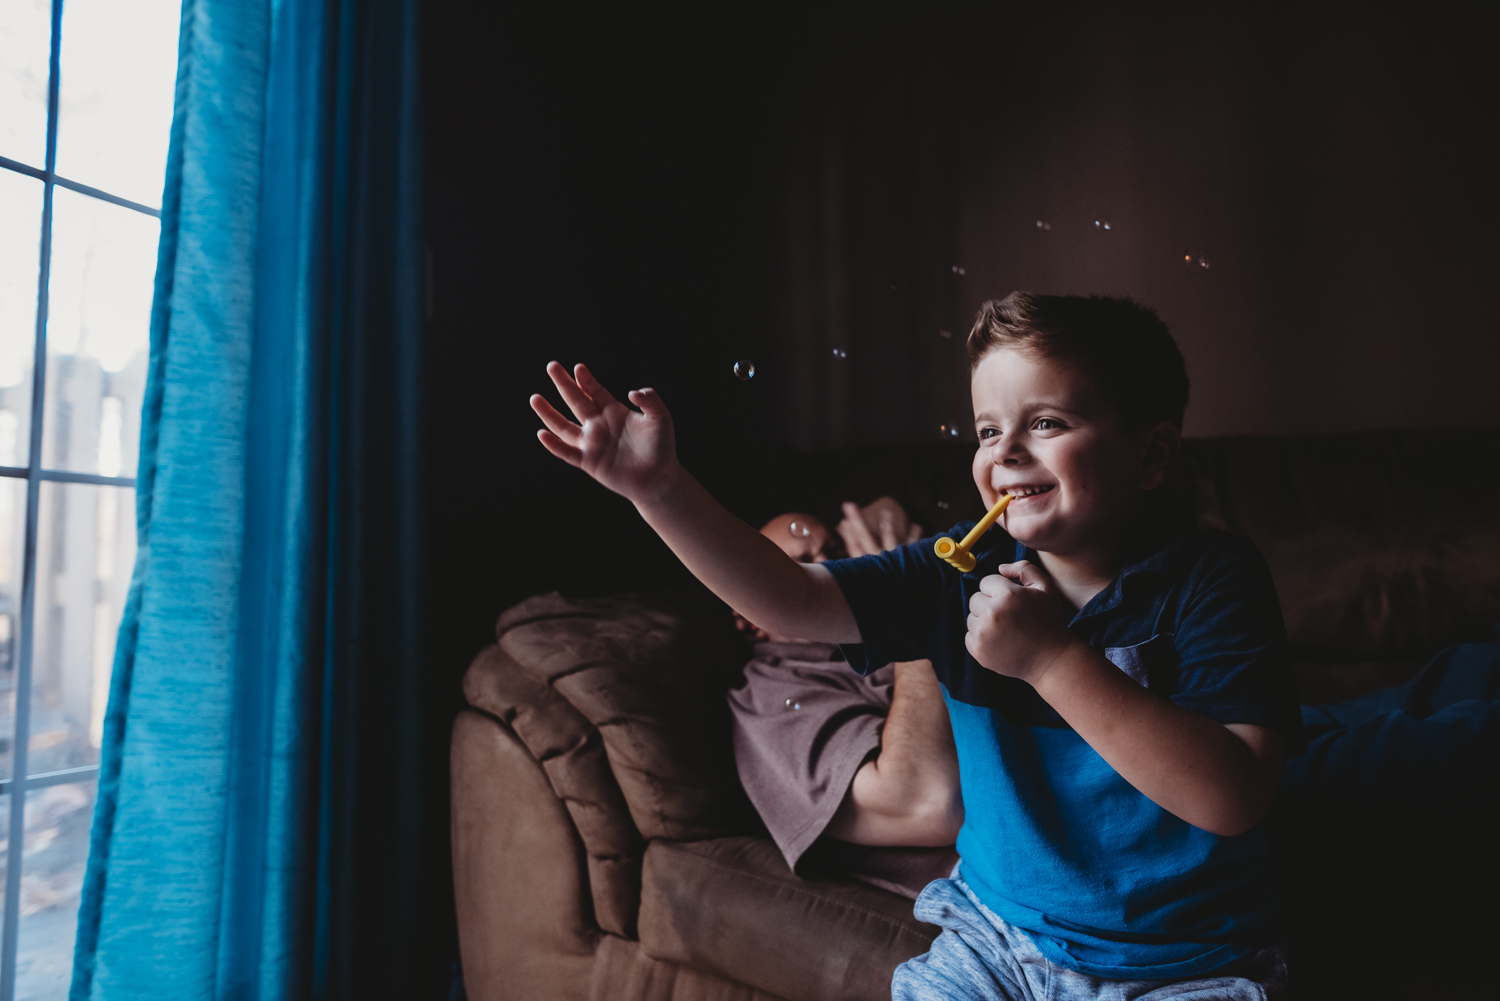 Angie_Klaus_photography_family-53.jpg